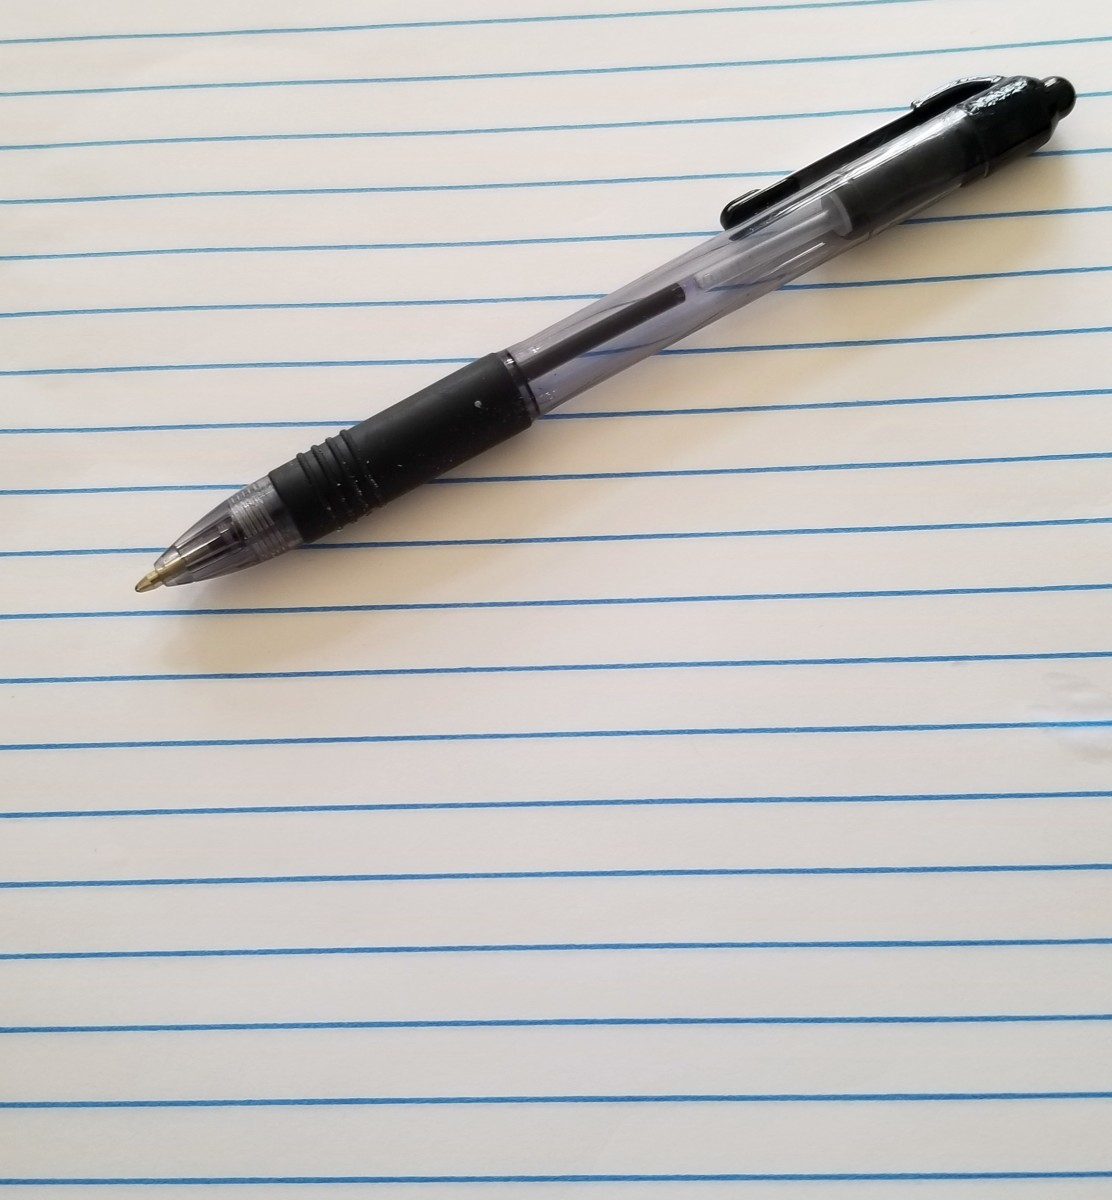 We all start with a blank page. Then we need to lengthen our article to cover the subject well.